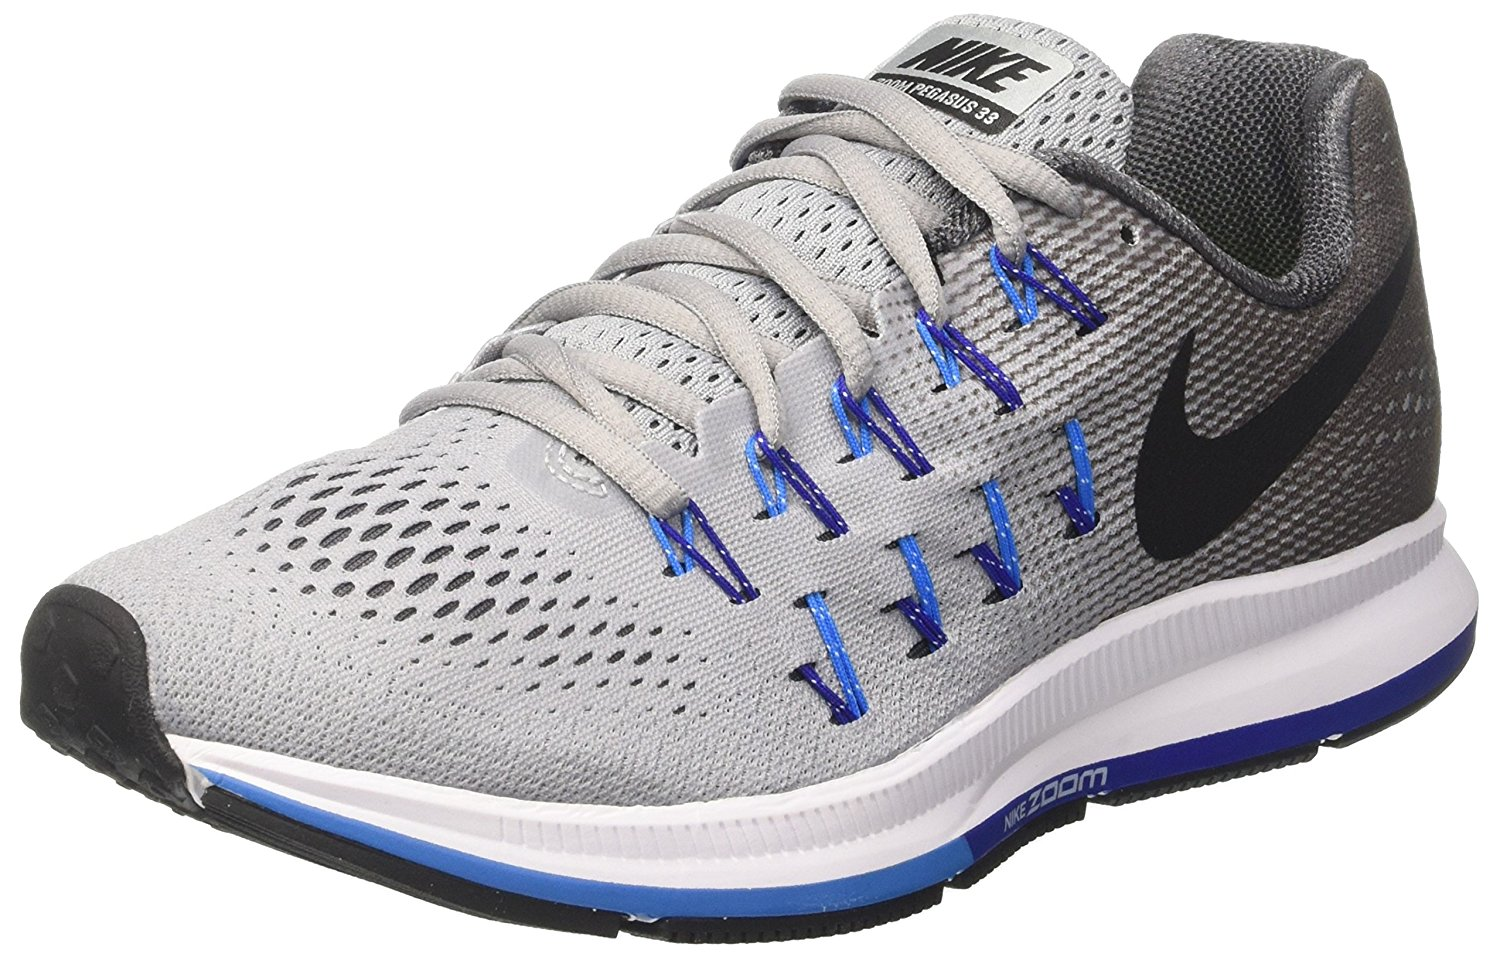 4234cda763 Flipkart Nike Air Max 2015 University Of Tennessee Shoes | Law Lanka